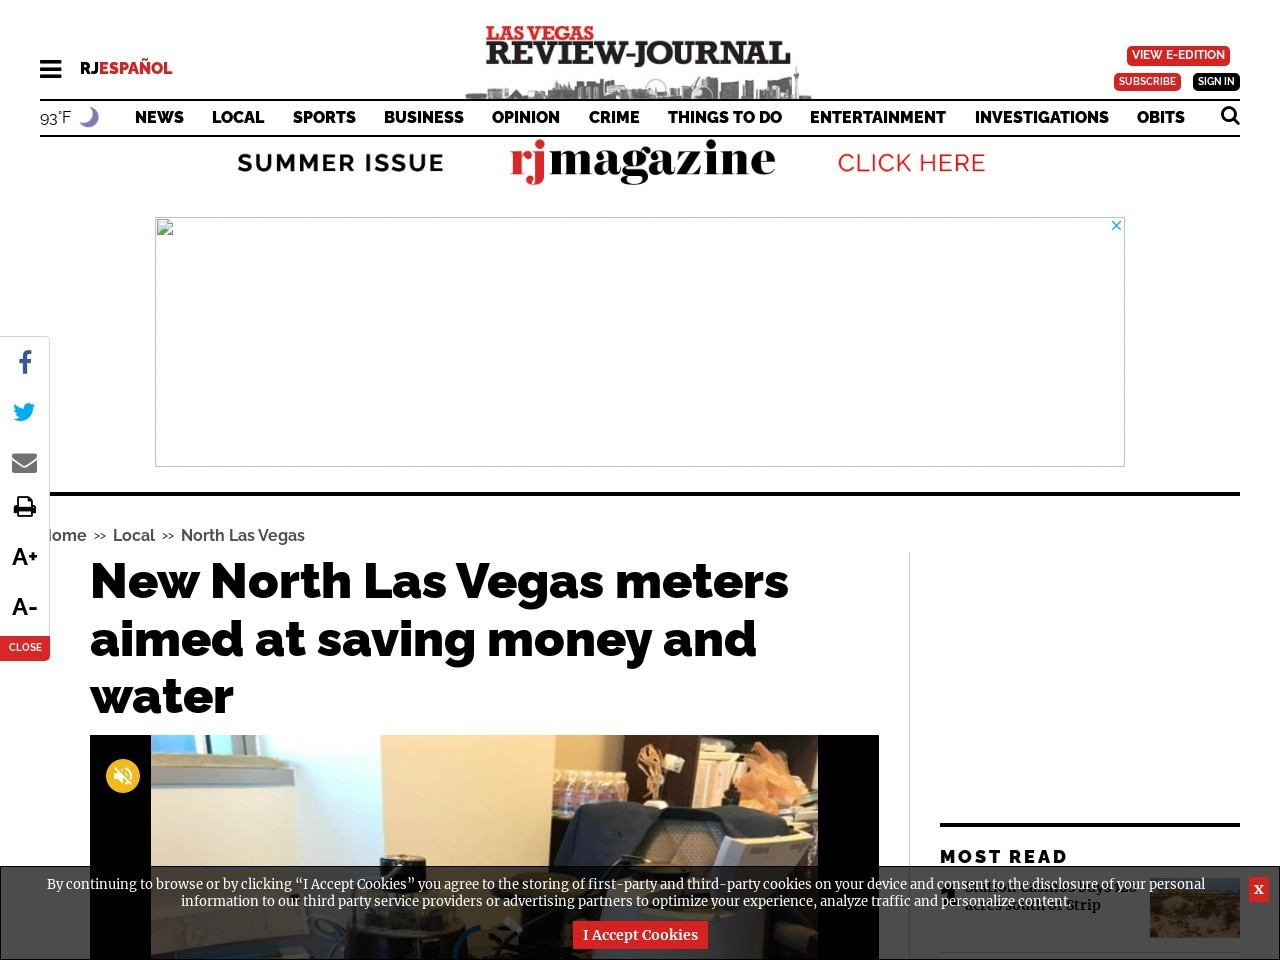 New North Las Vegas meters aimed at saving money and water